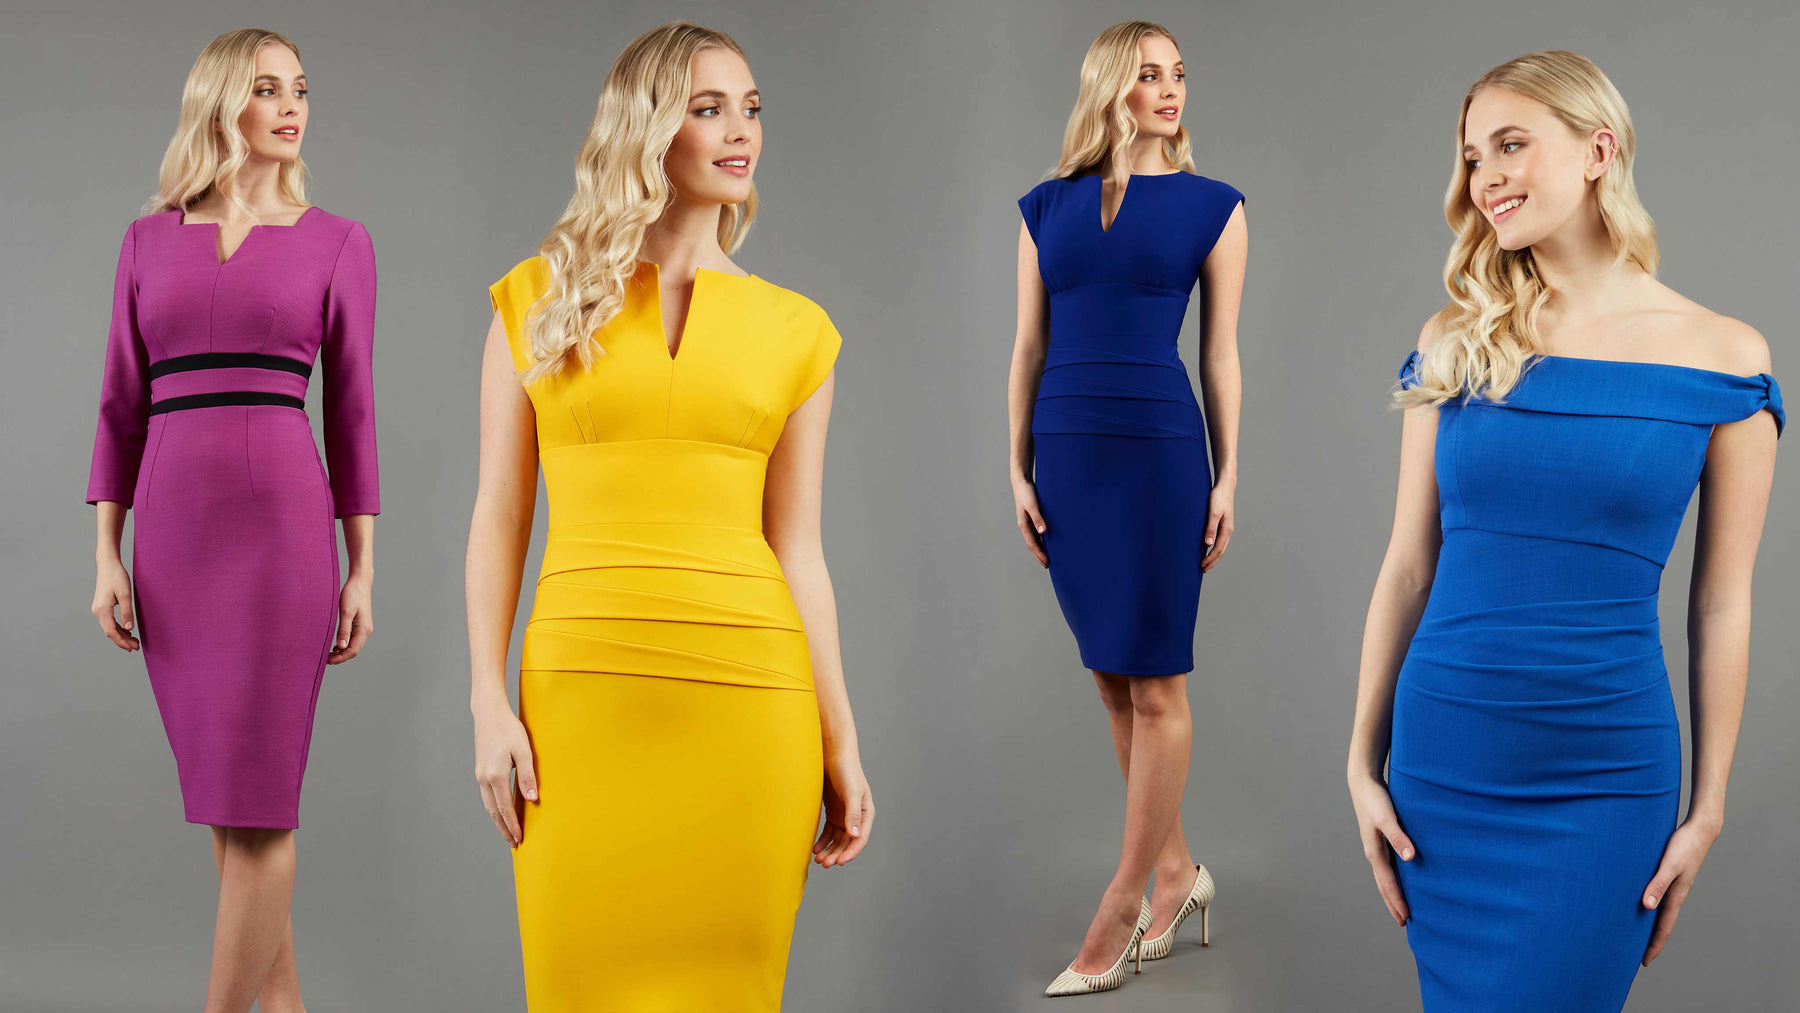 An image of blonde hair models wearing purple yellow navy and blue pencil dresses by diva catwalk, made in england UK